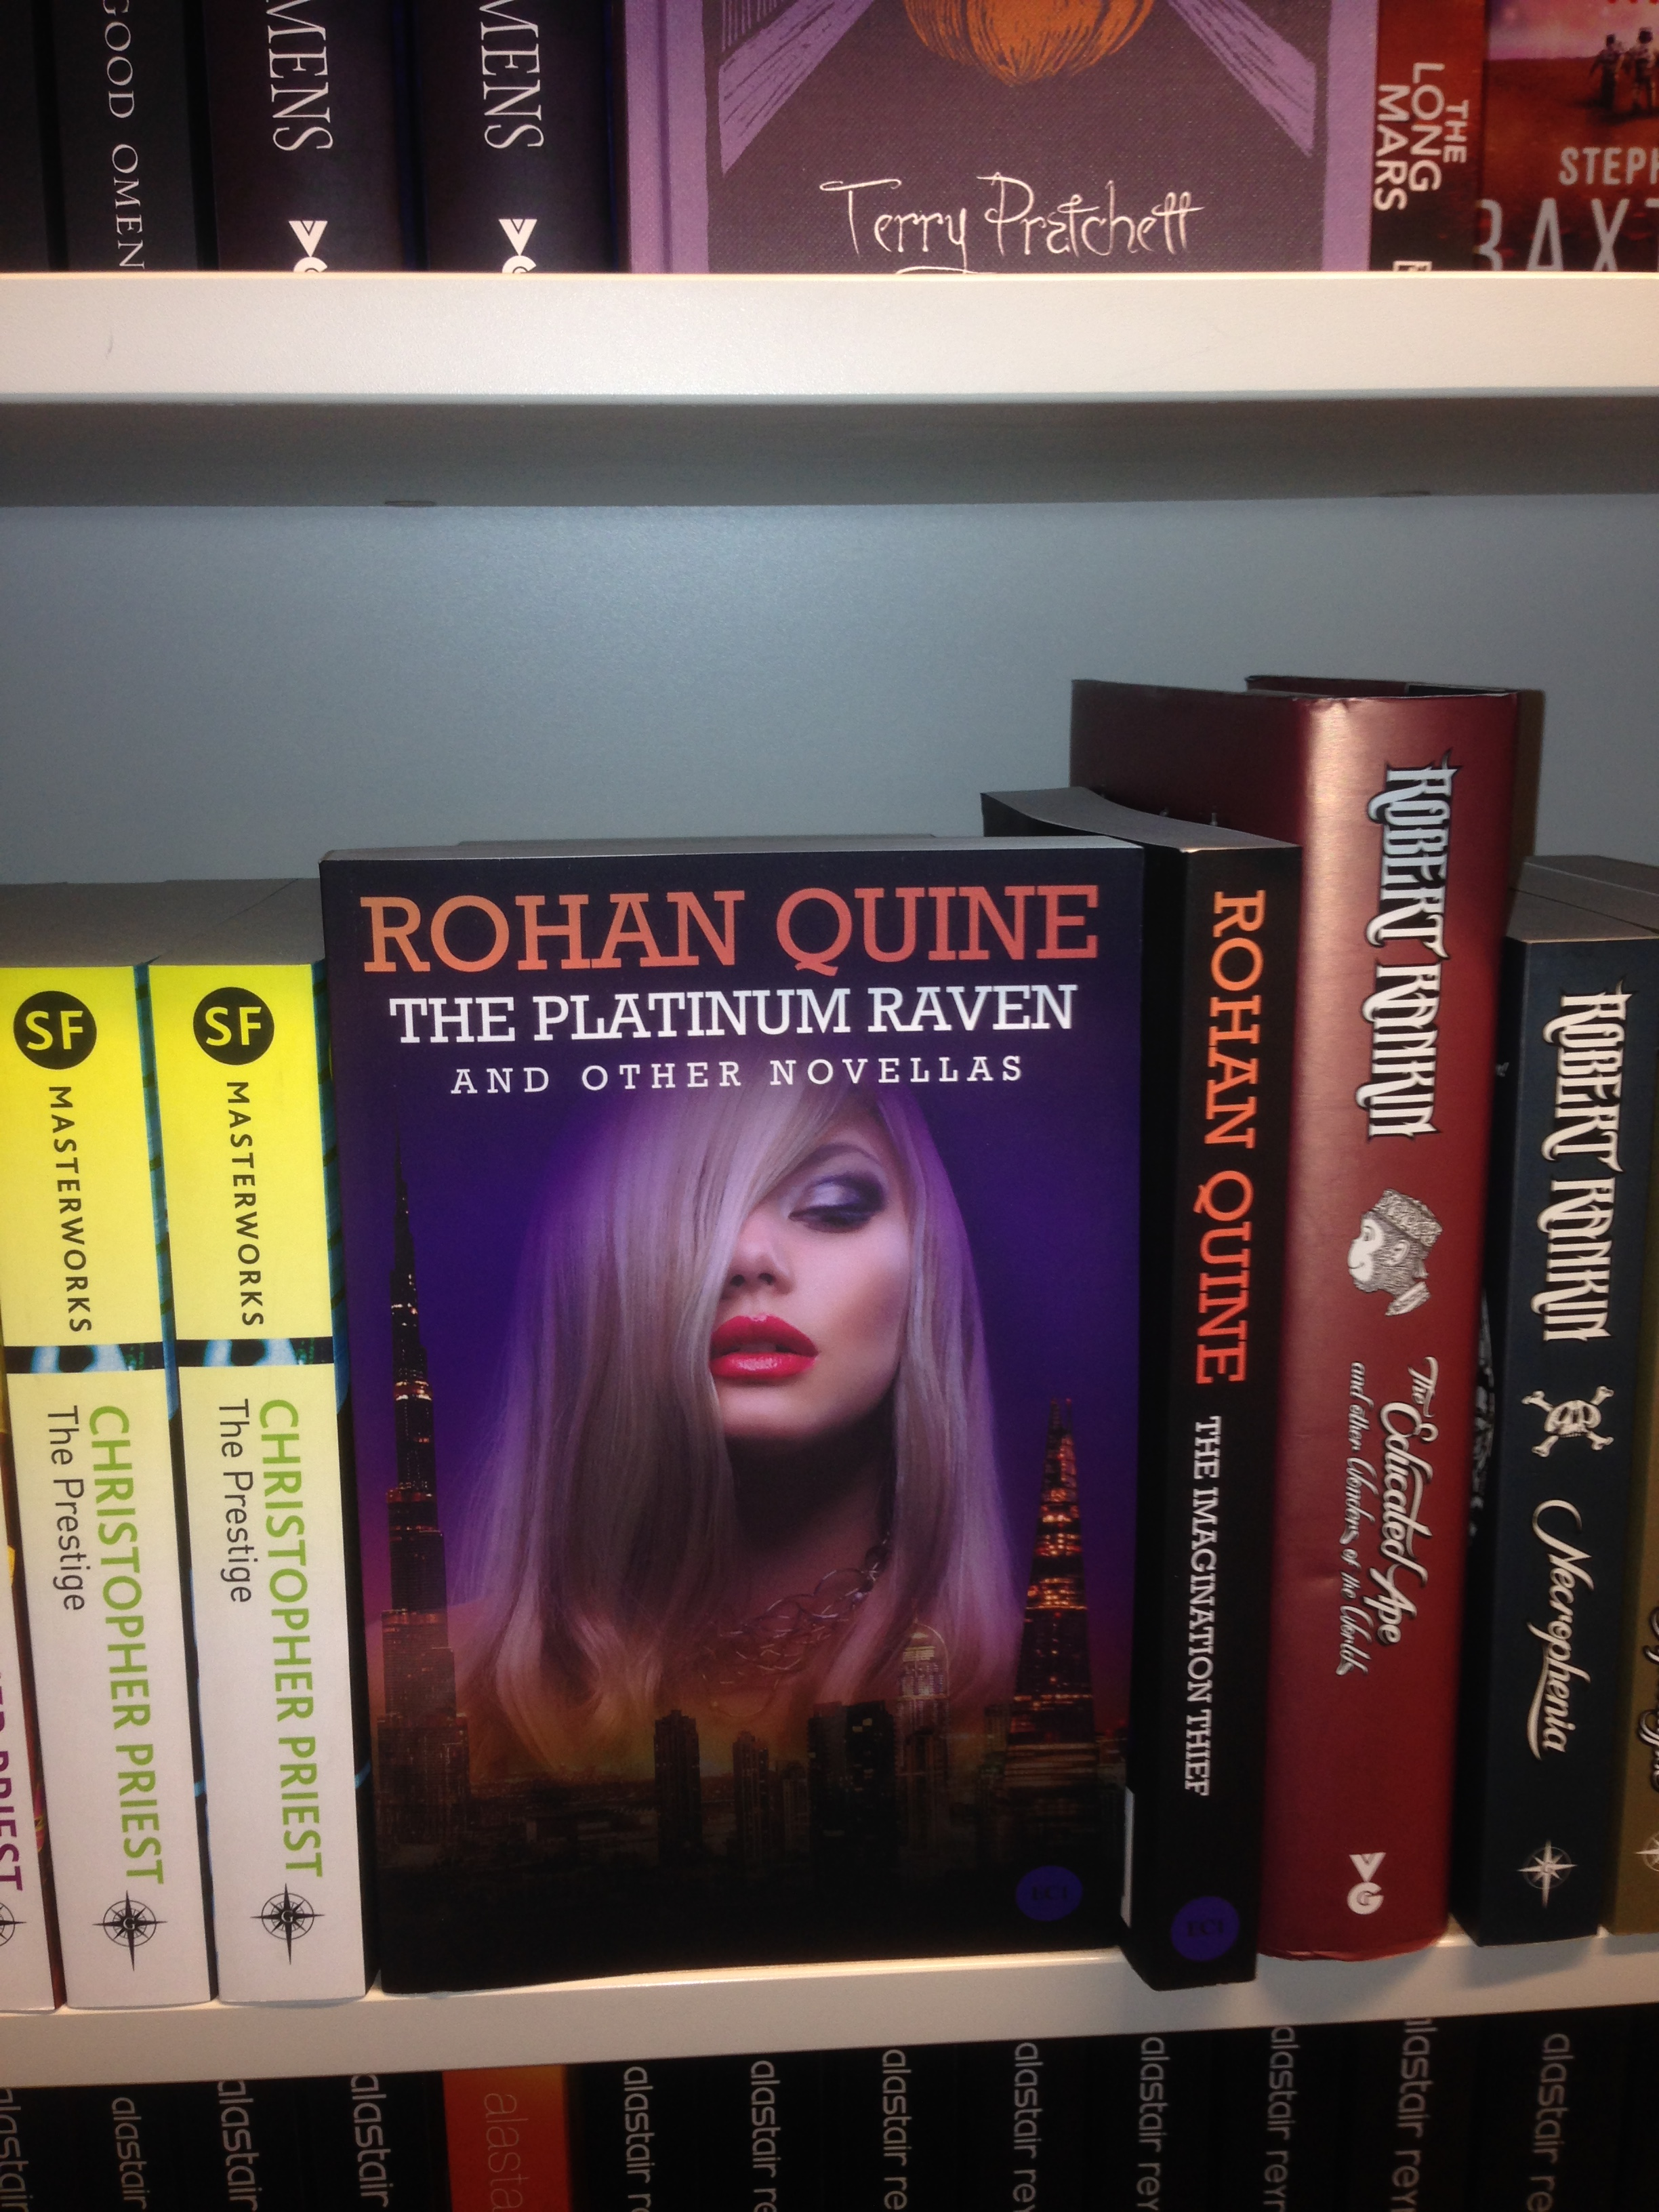 "Rohan Quine's ""The Platinum Raven and other novellas"" in Foyles' Fantasy/SciFi section"